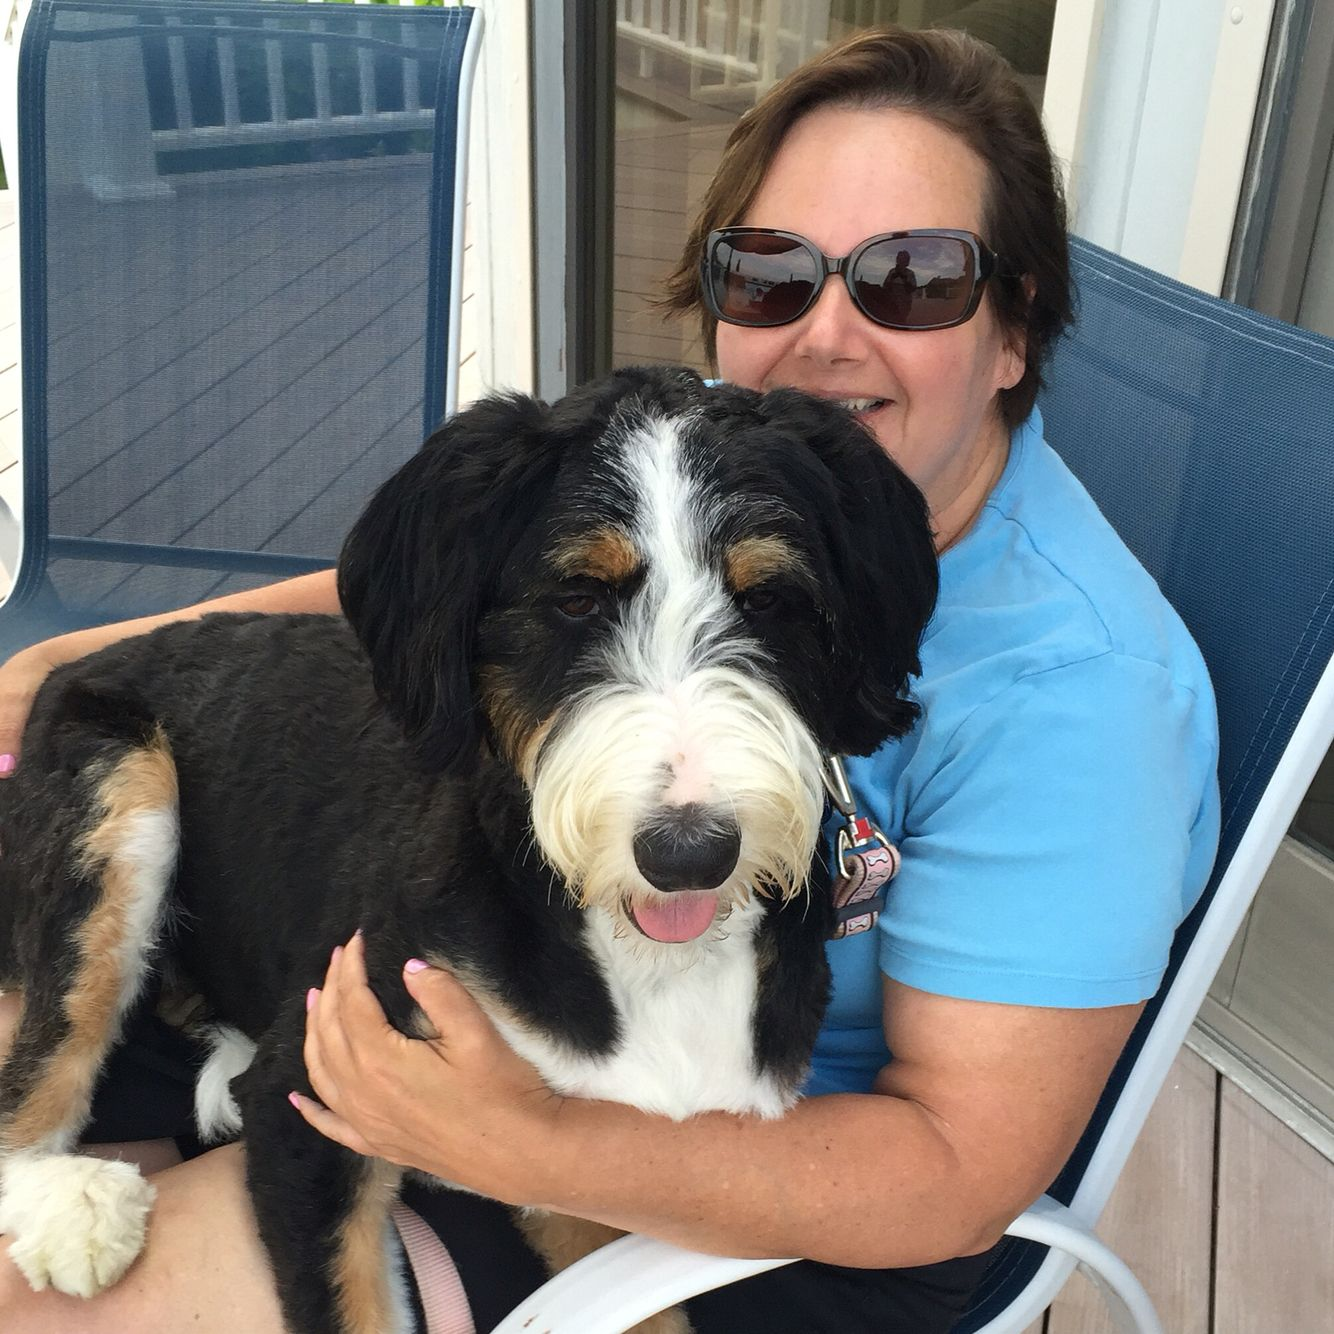 Pin By Sharon Lichten Stenger On Puck Our Bernedoodle Bernese Mountain Dog Poodle Lap Dogs Bernedoodle